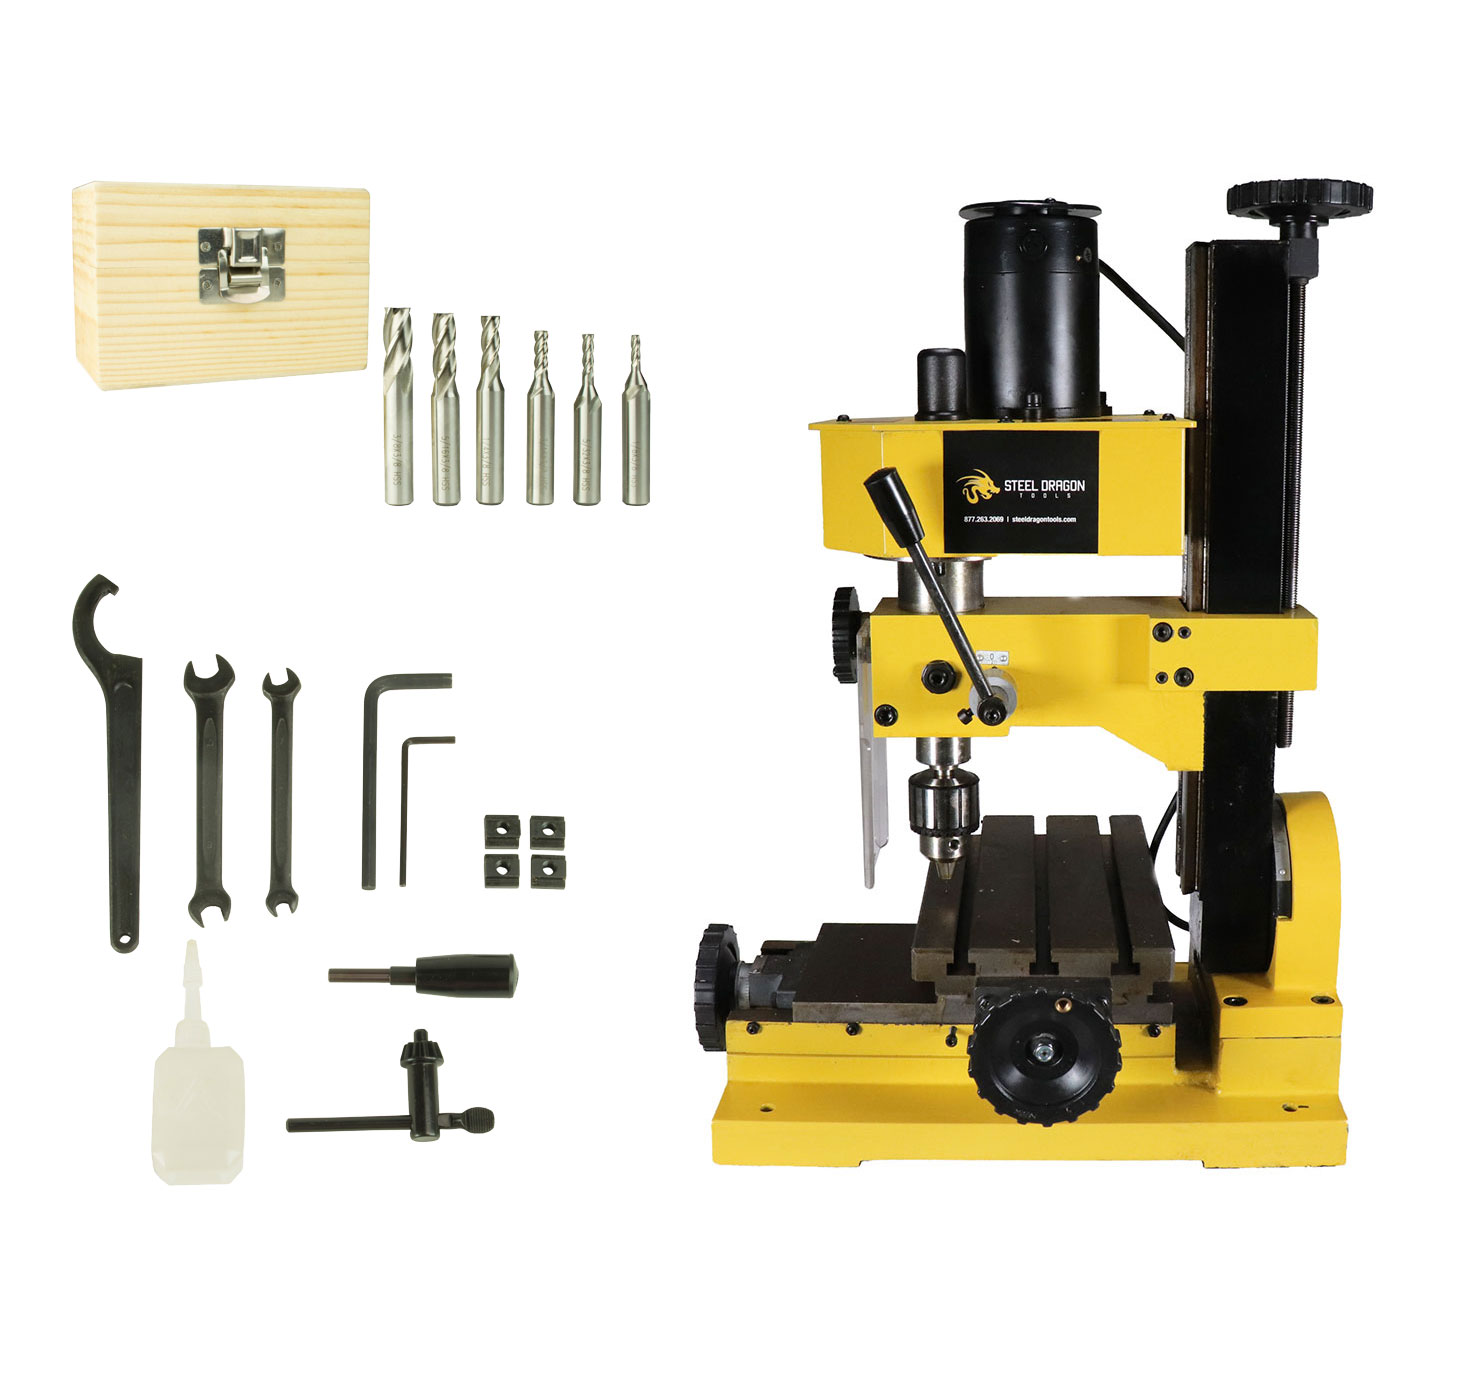 Milling Machine For Sale >> Details About Erie Tools Mini Bench Top Mill Drilling Machine Gear Driven Adjustable Stop